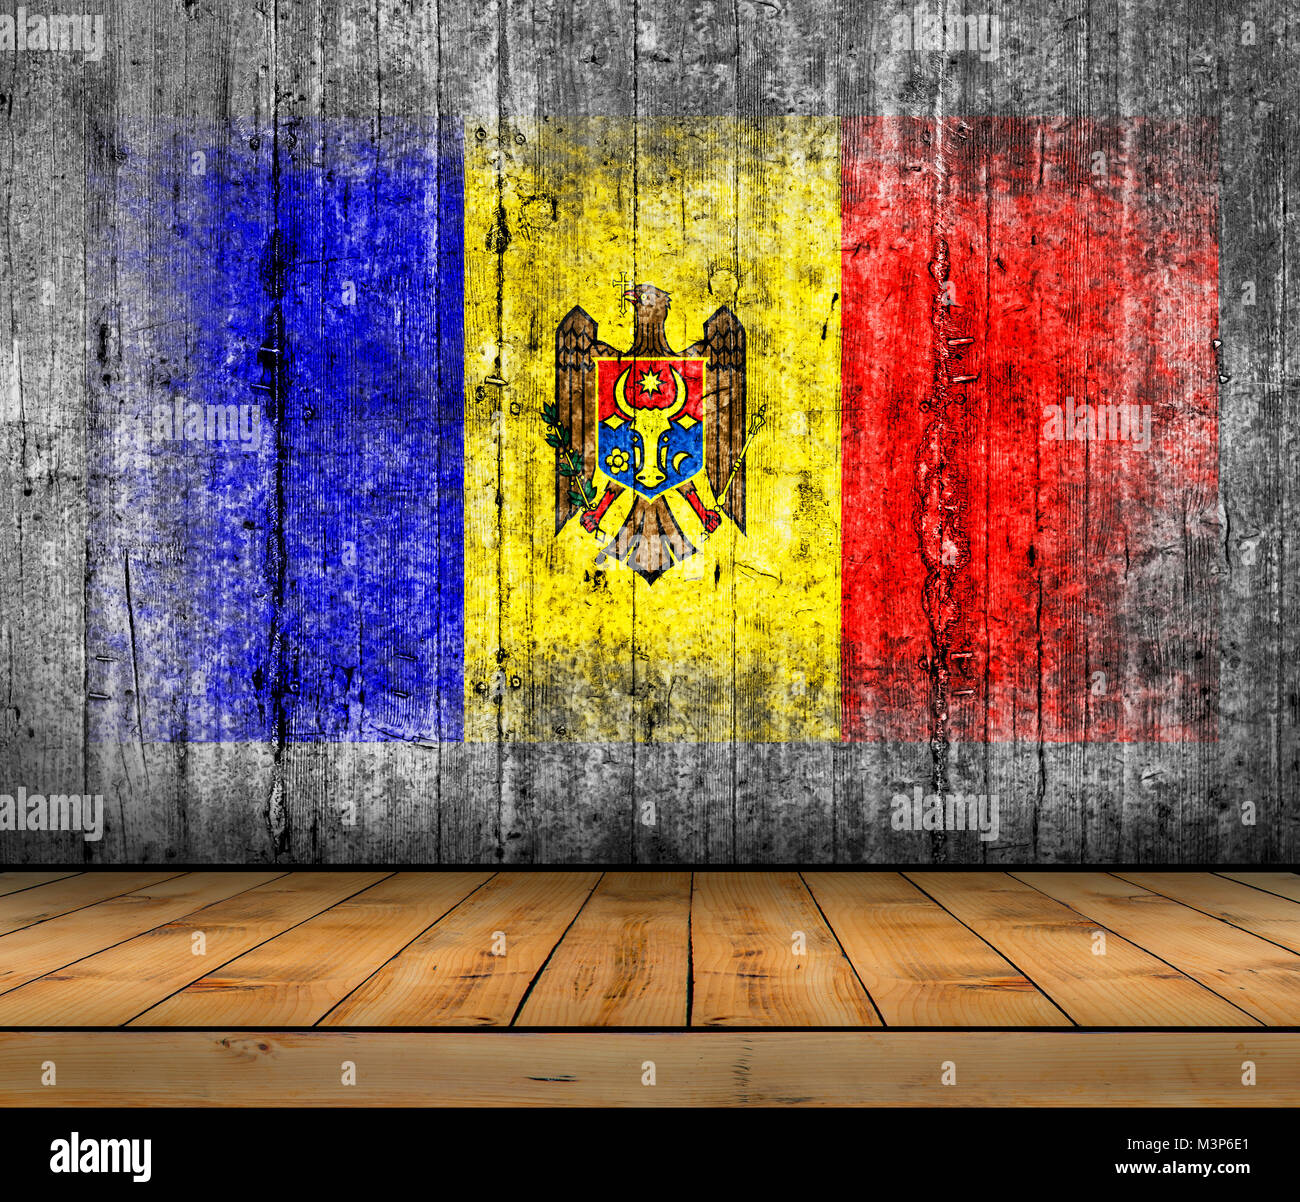 Moldova flag painted on background texture gray concrete with wooden floor - Stock Image